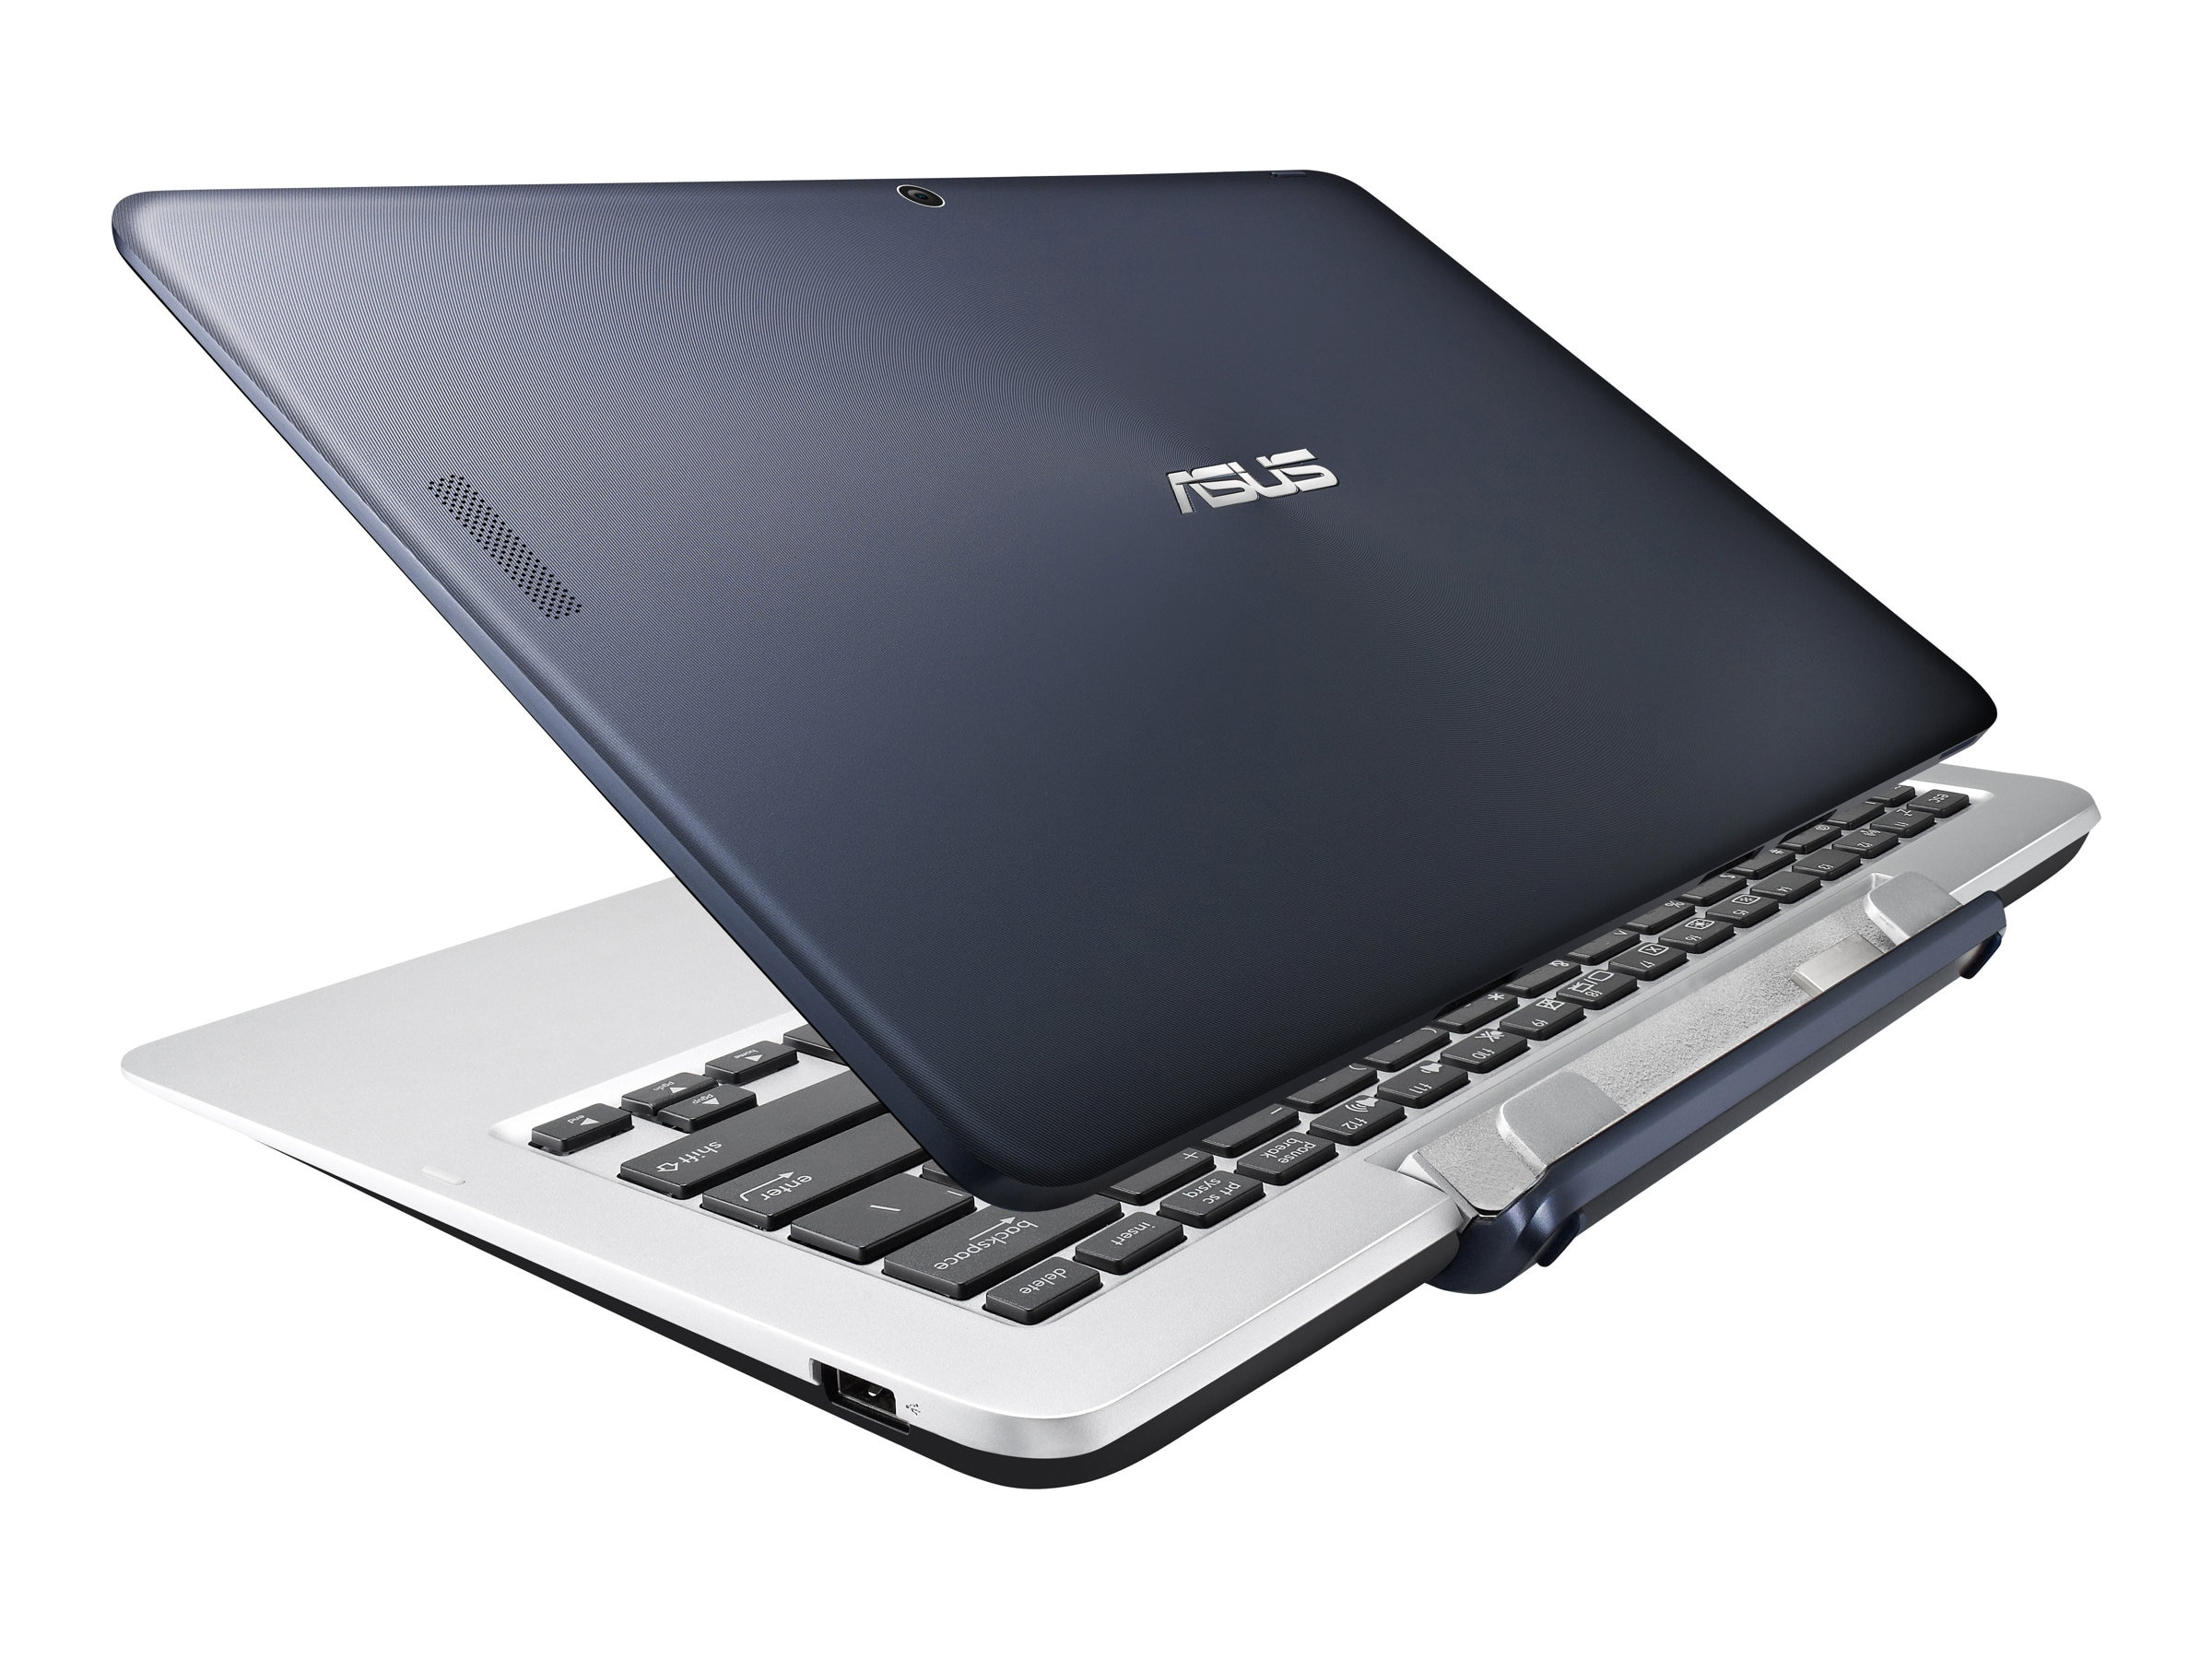 Asus T200TA-C1 Notebook PC 4GB 64GB 11.6 W8.1 Blue, T200TA-C1-BL, 17765405, Notebooks - Convertible